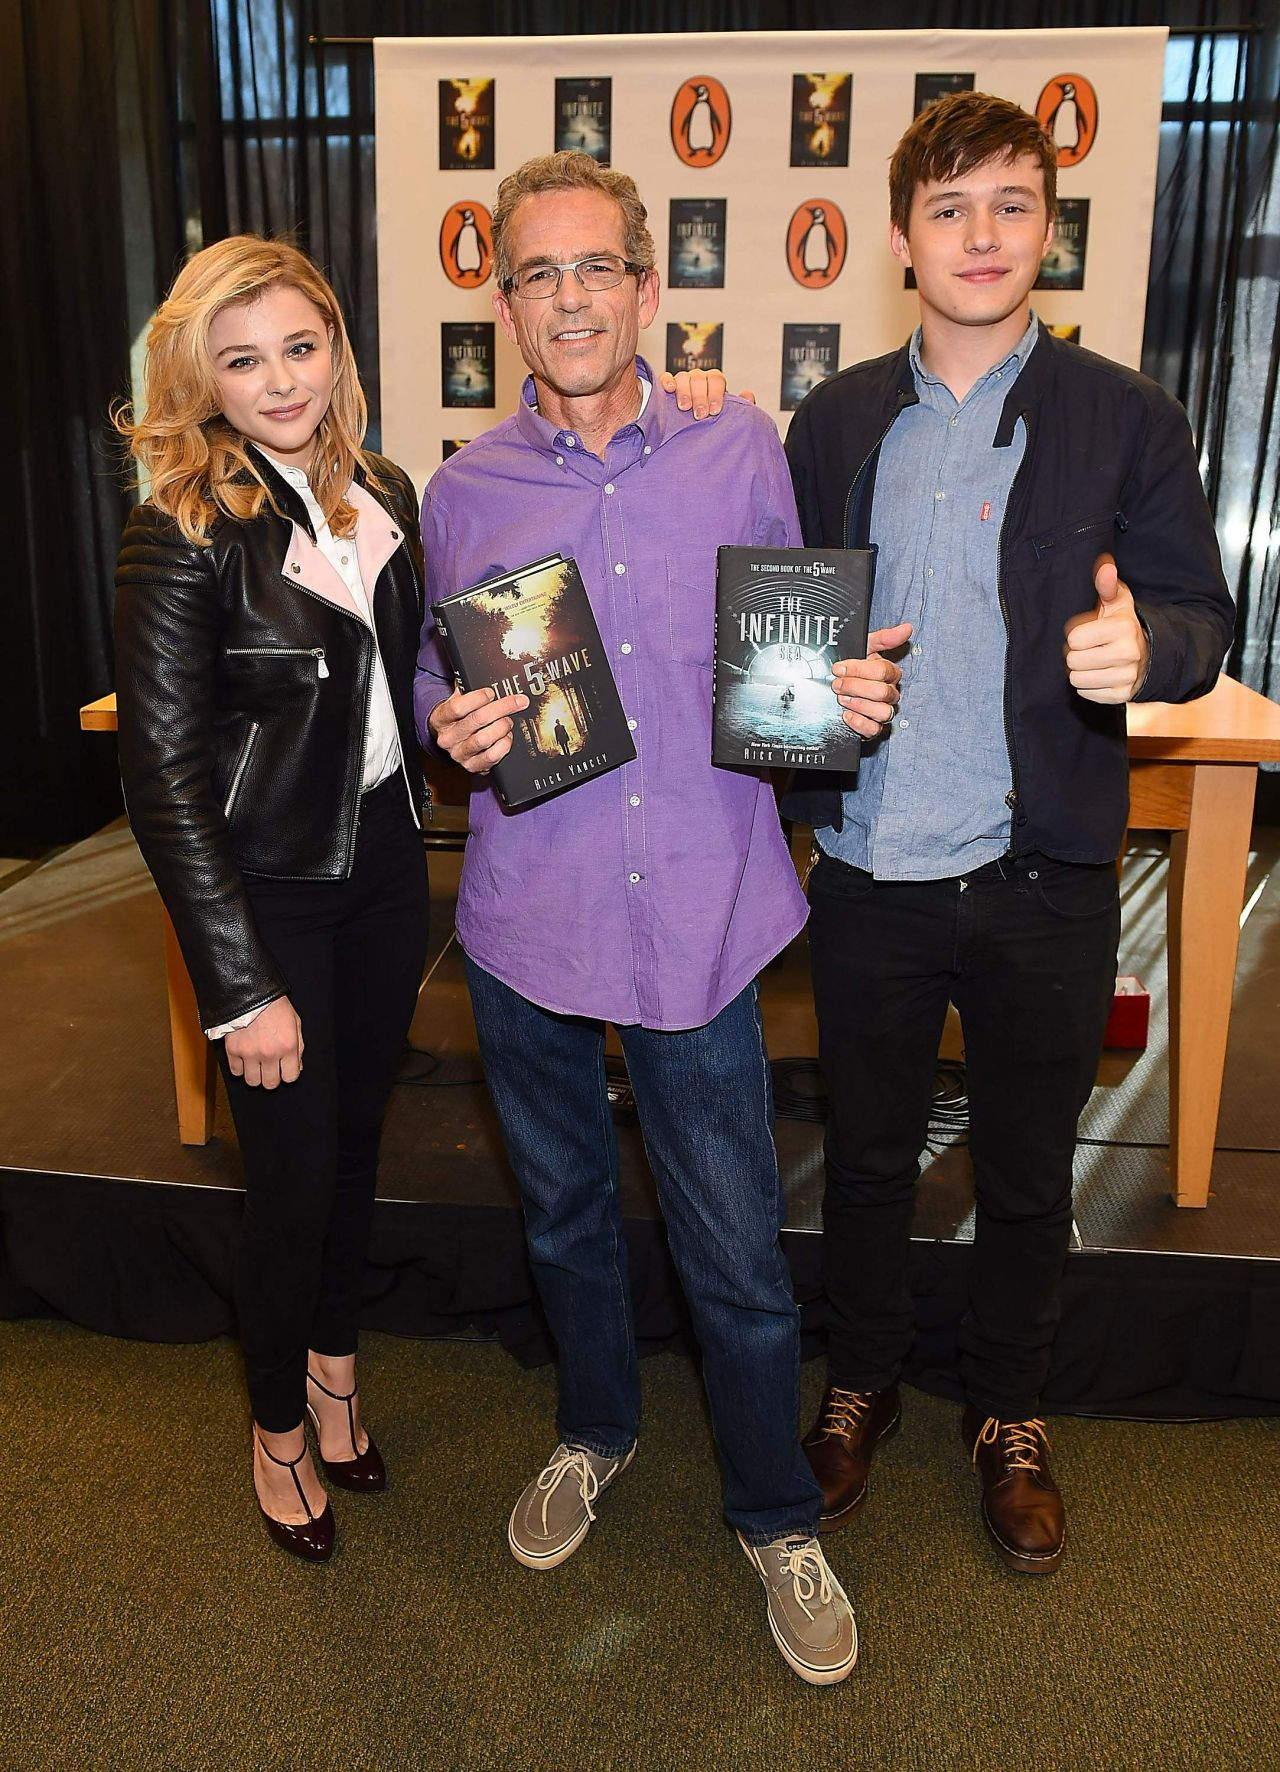 Chloe Moretz - 'The 5th Wave' Book & Movie Promotion